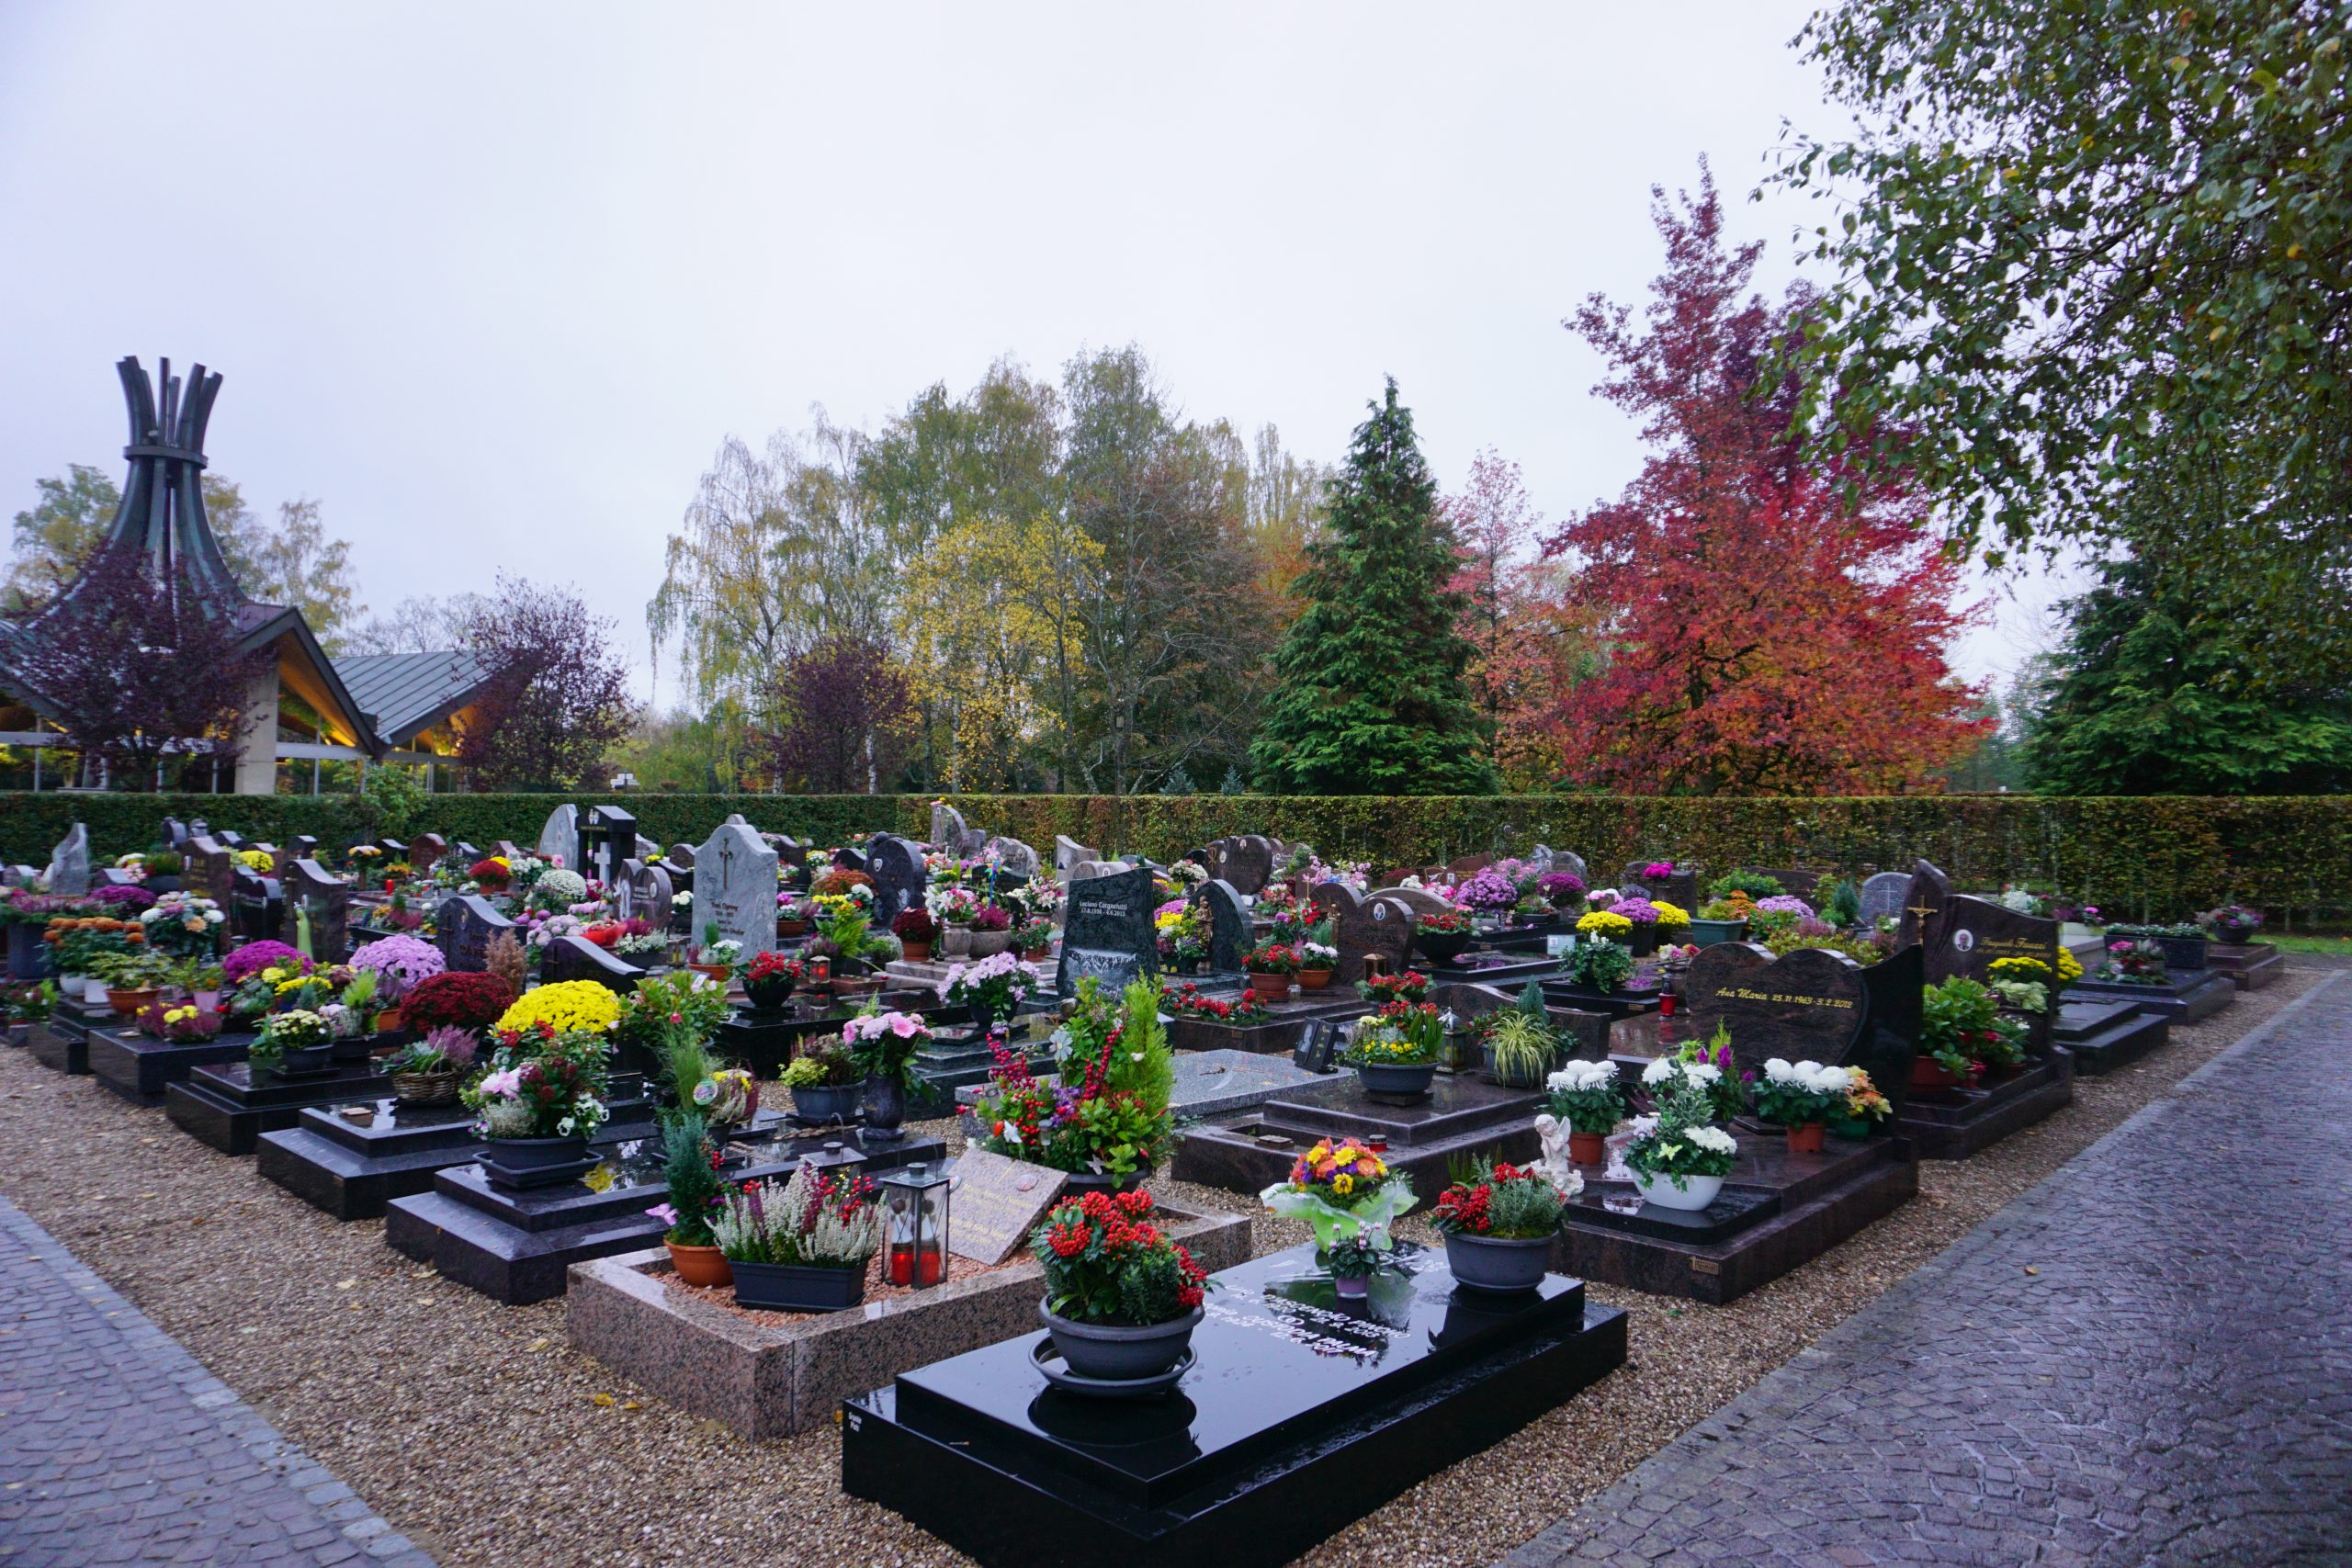 Graves Cemetery Merl-Belair Luxembourg